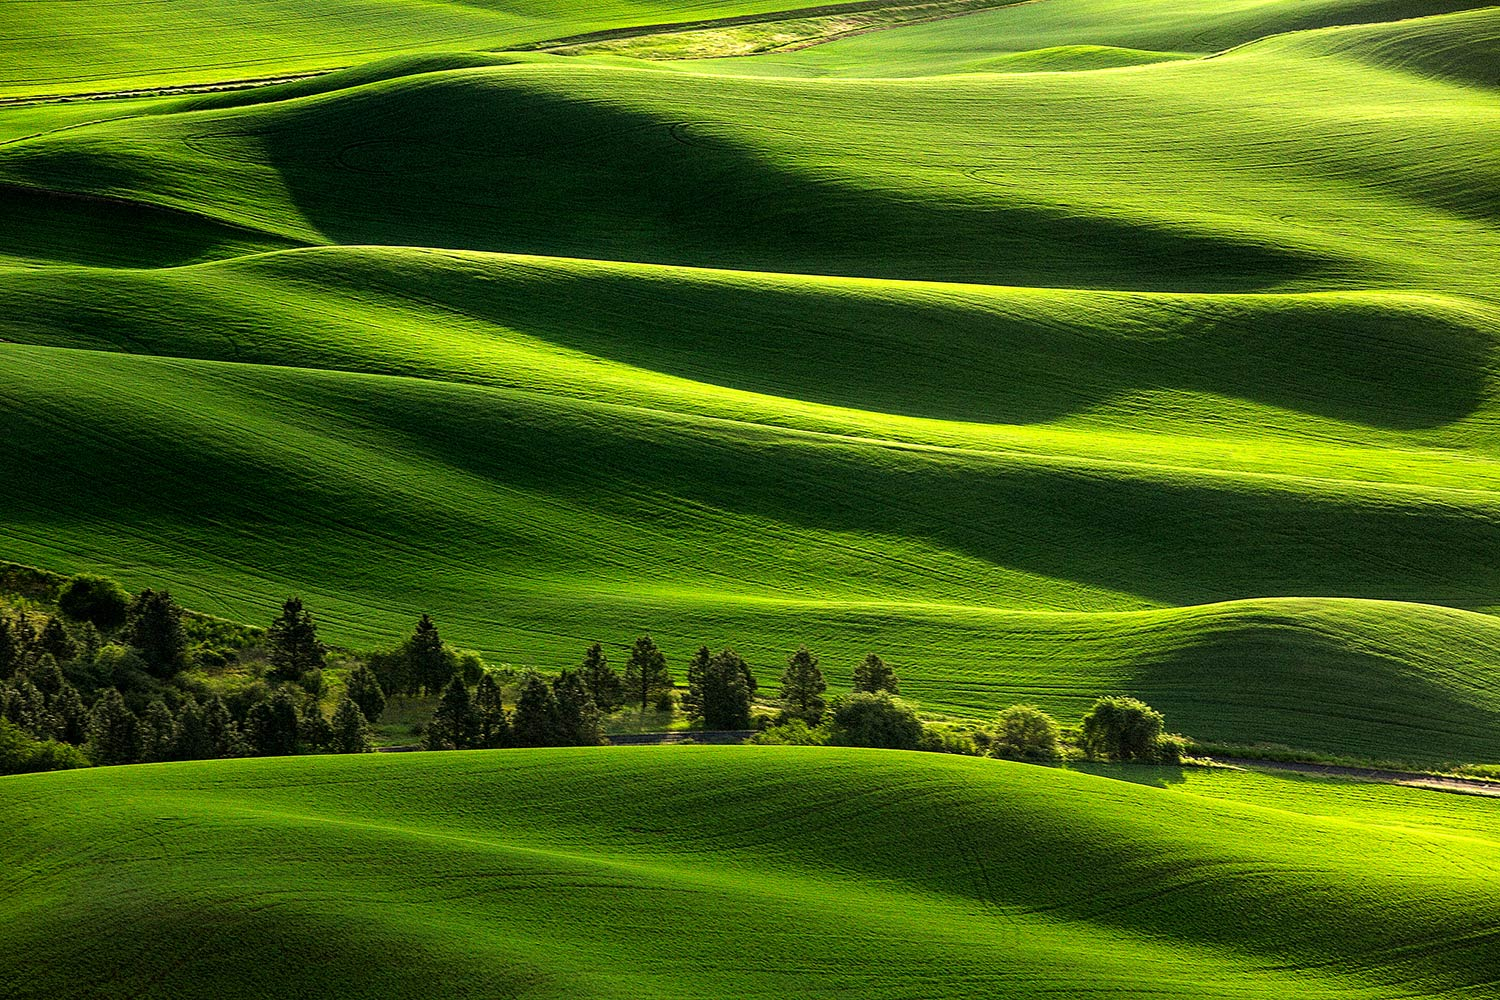 Blanketed in Green